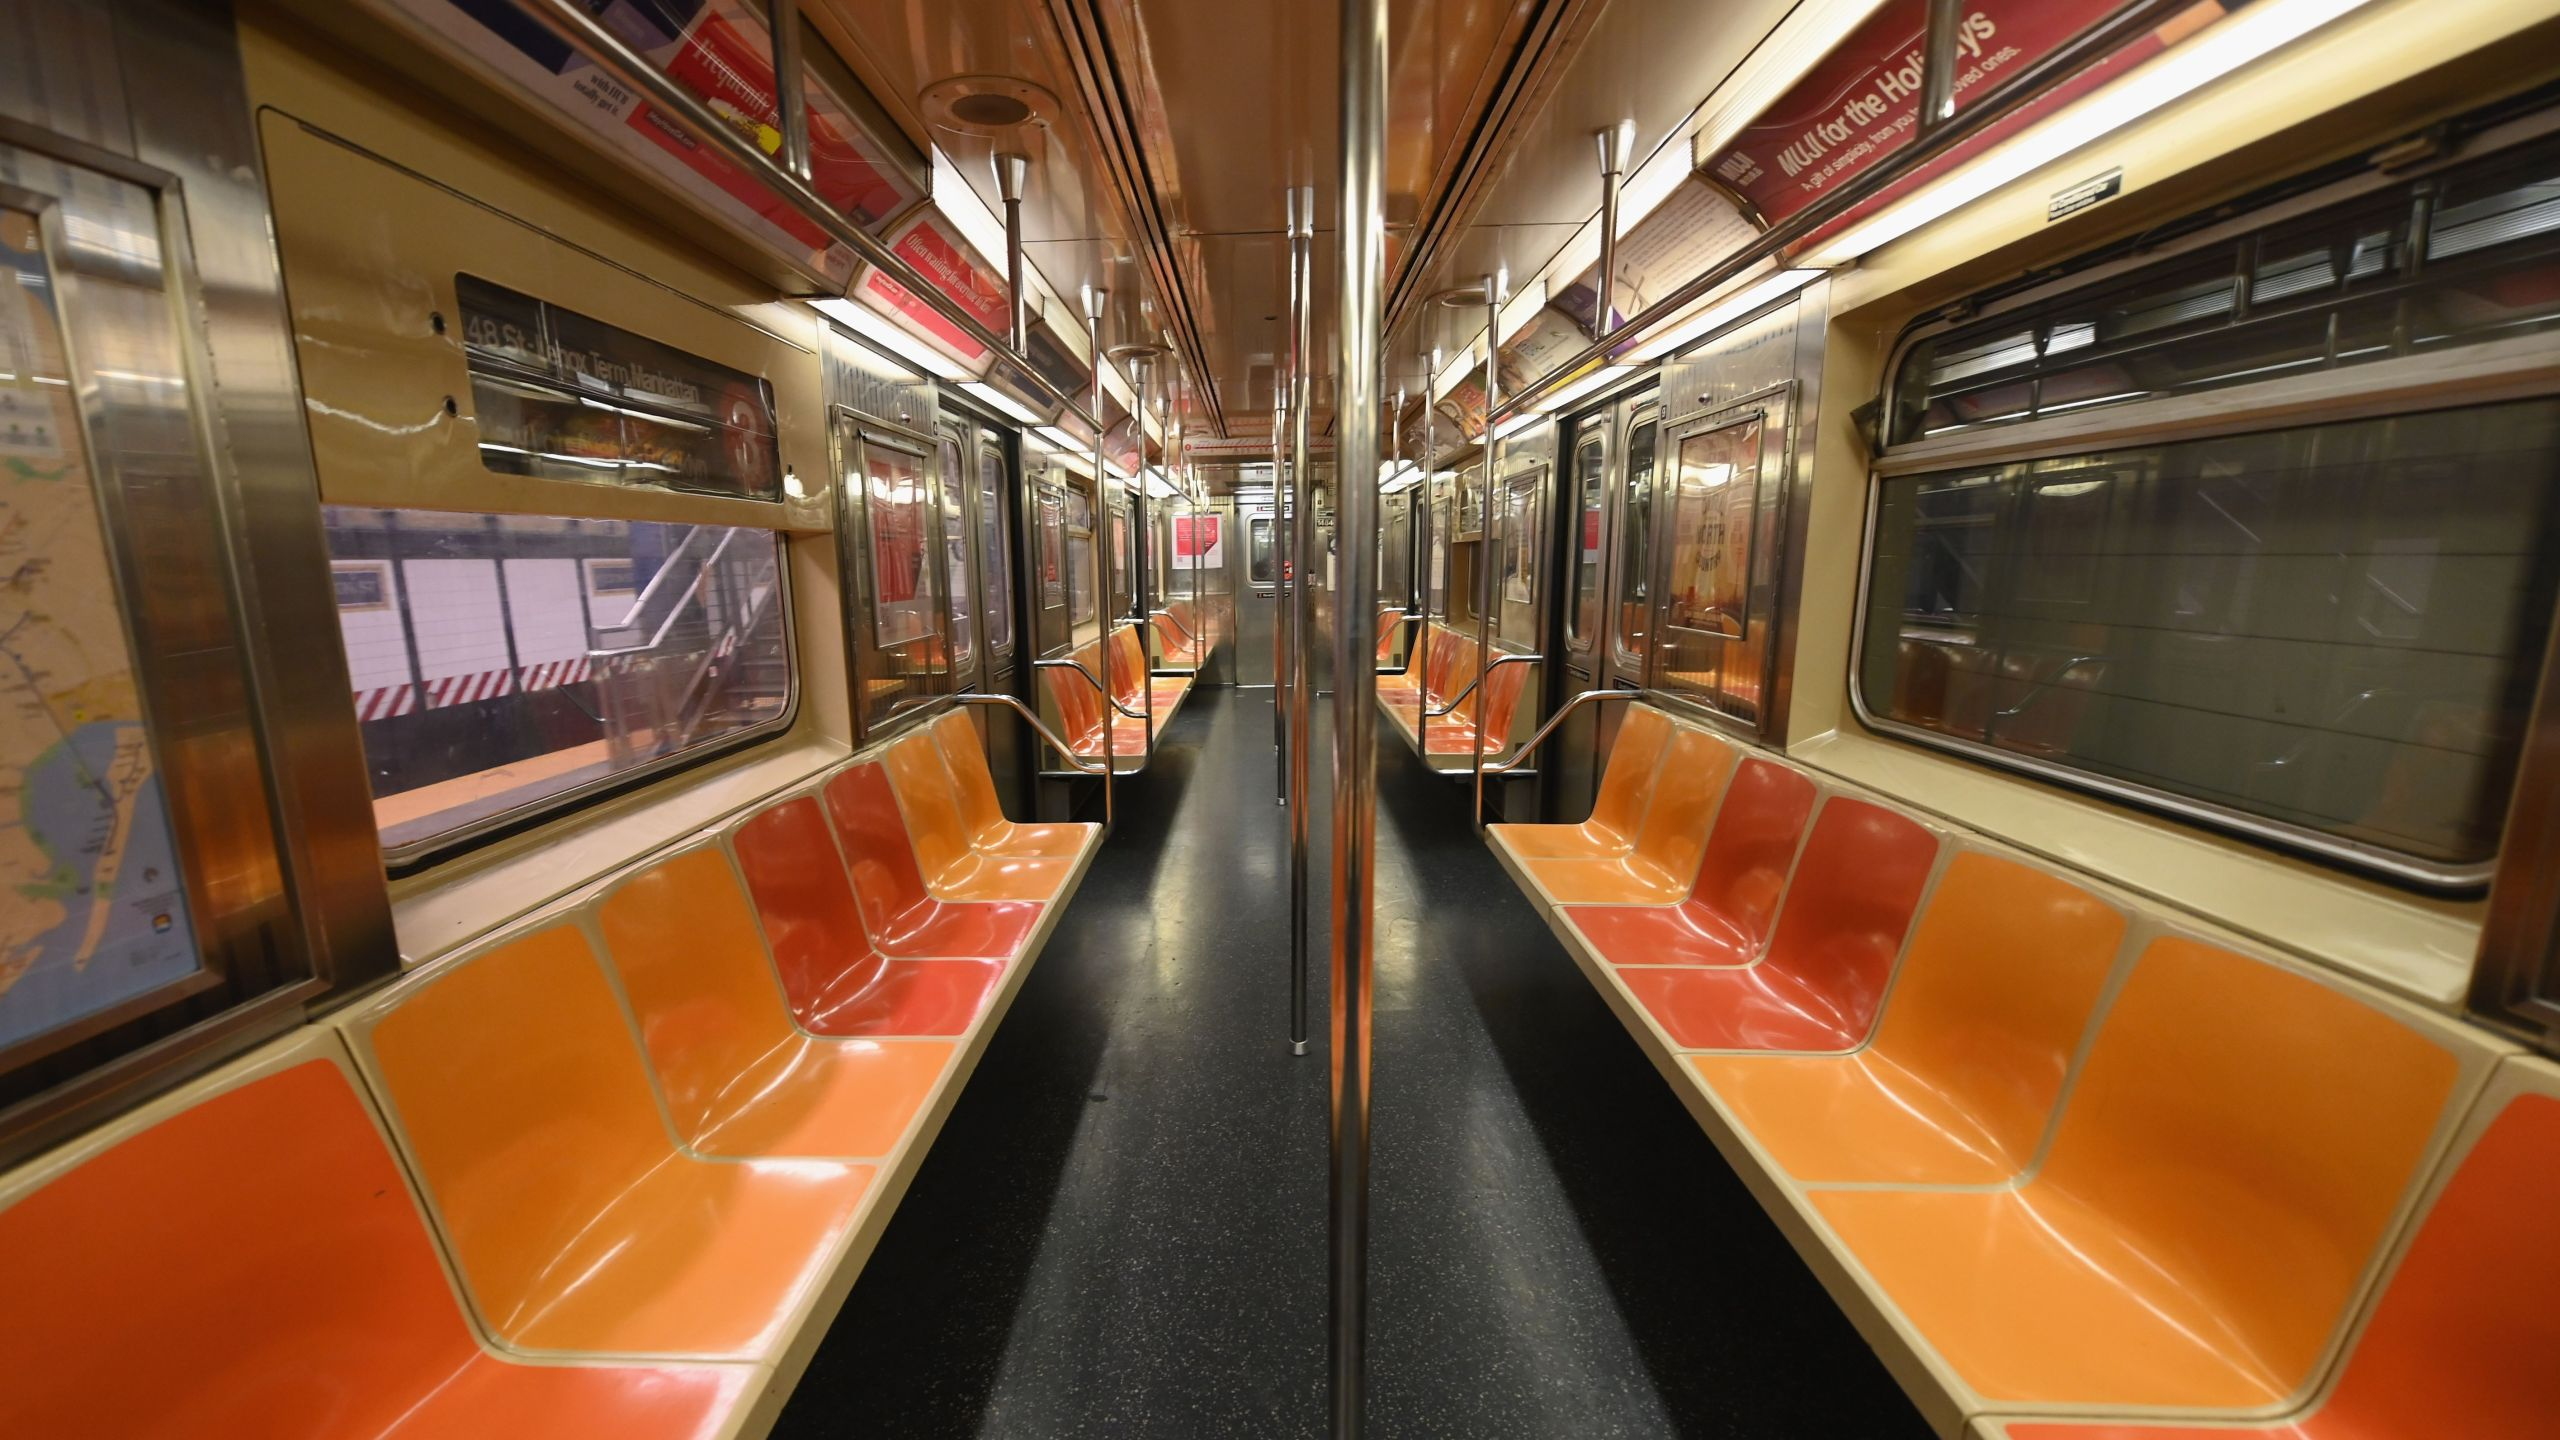 An empty New York Subway car is seen on March 23, 2020 in New York City. (ANGELA WEISS/AFP via Getty Images)